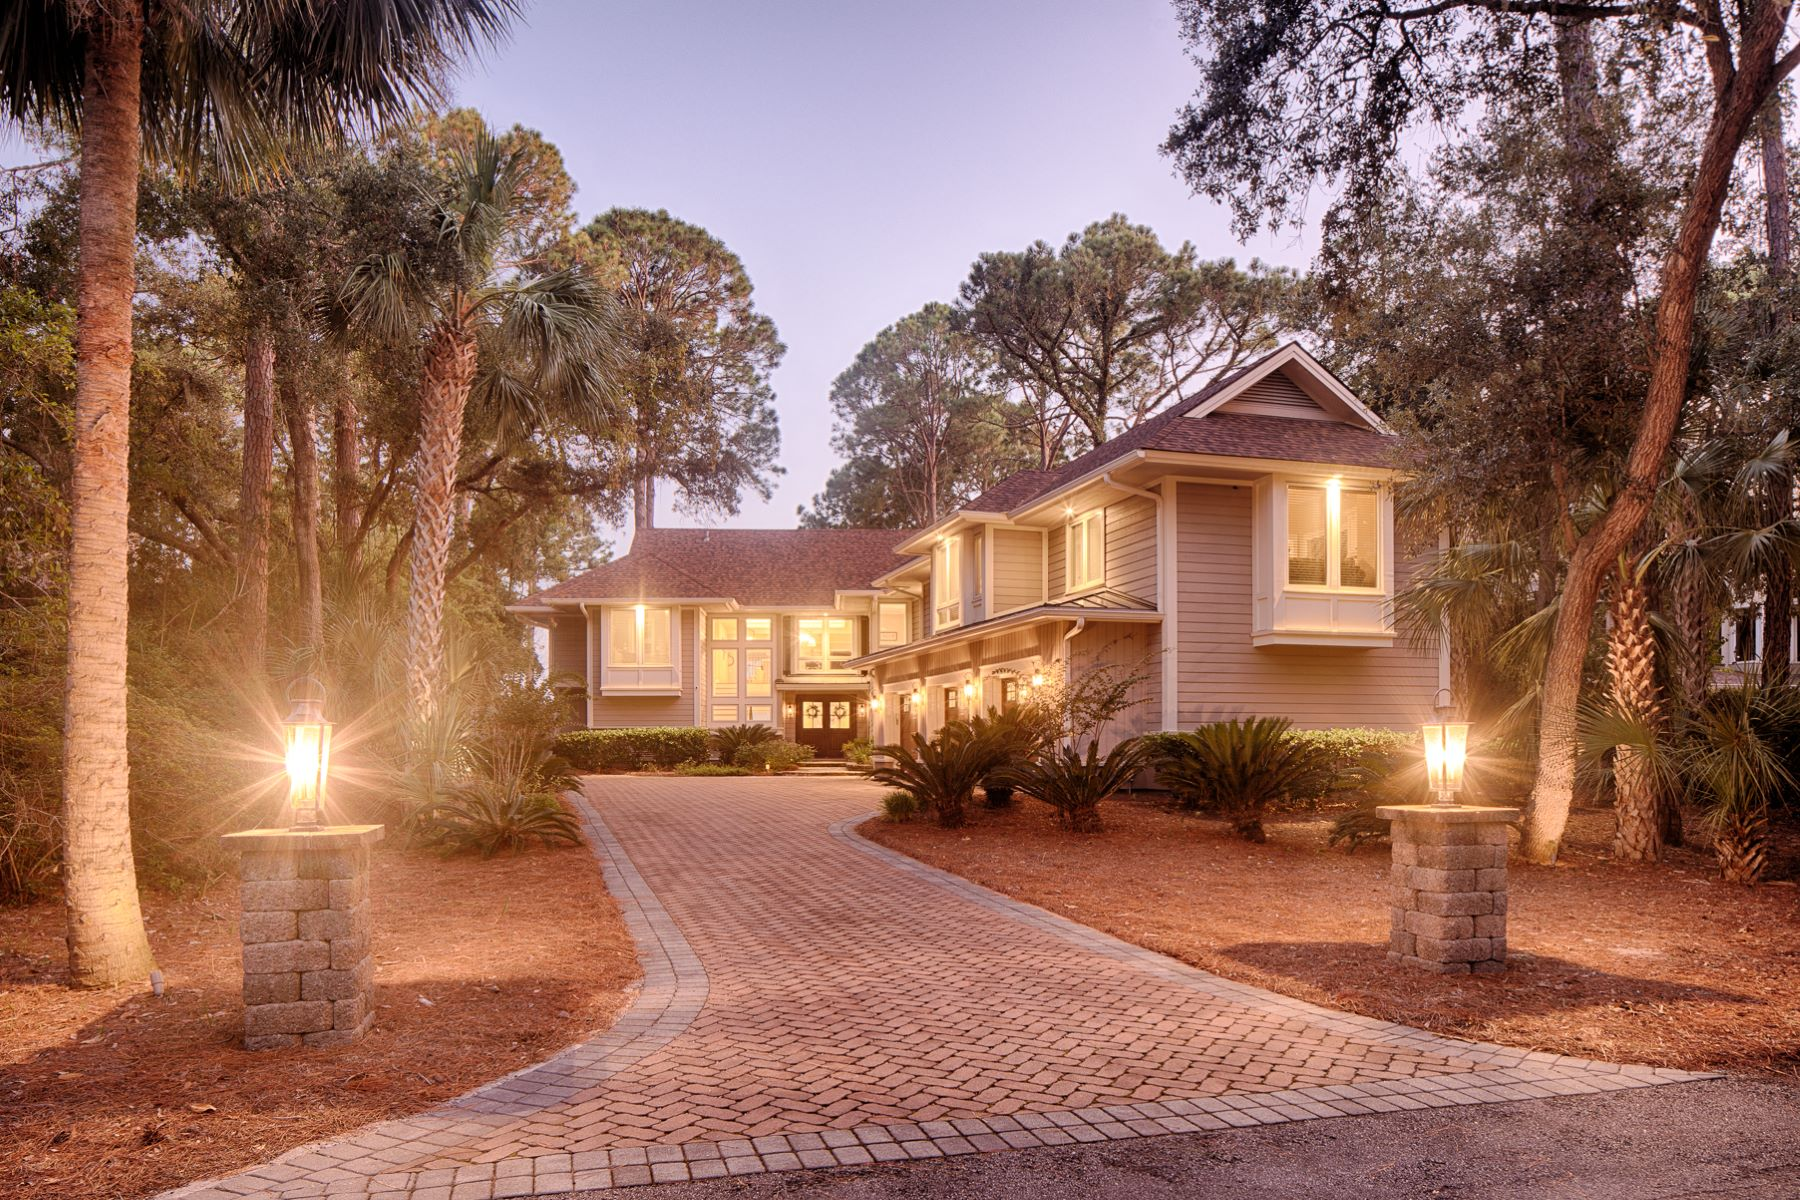 Single Family Homes for Sale at 18 Bald Eagle Road Hilton Head Island, South Carolina 29928 United States